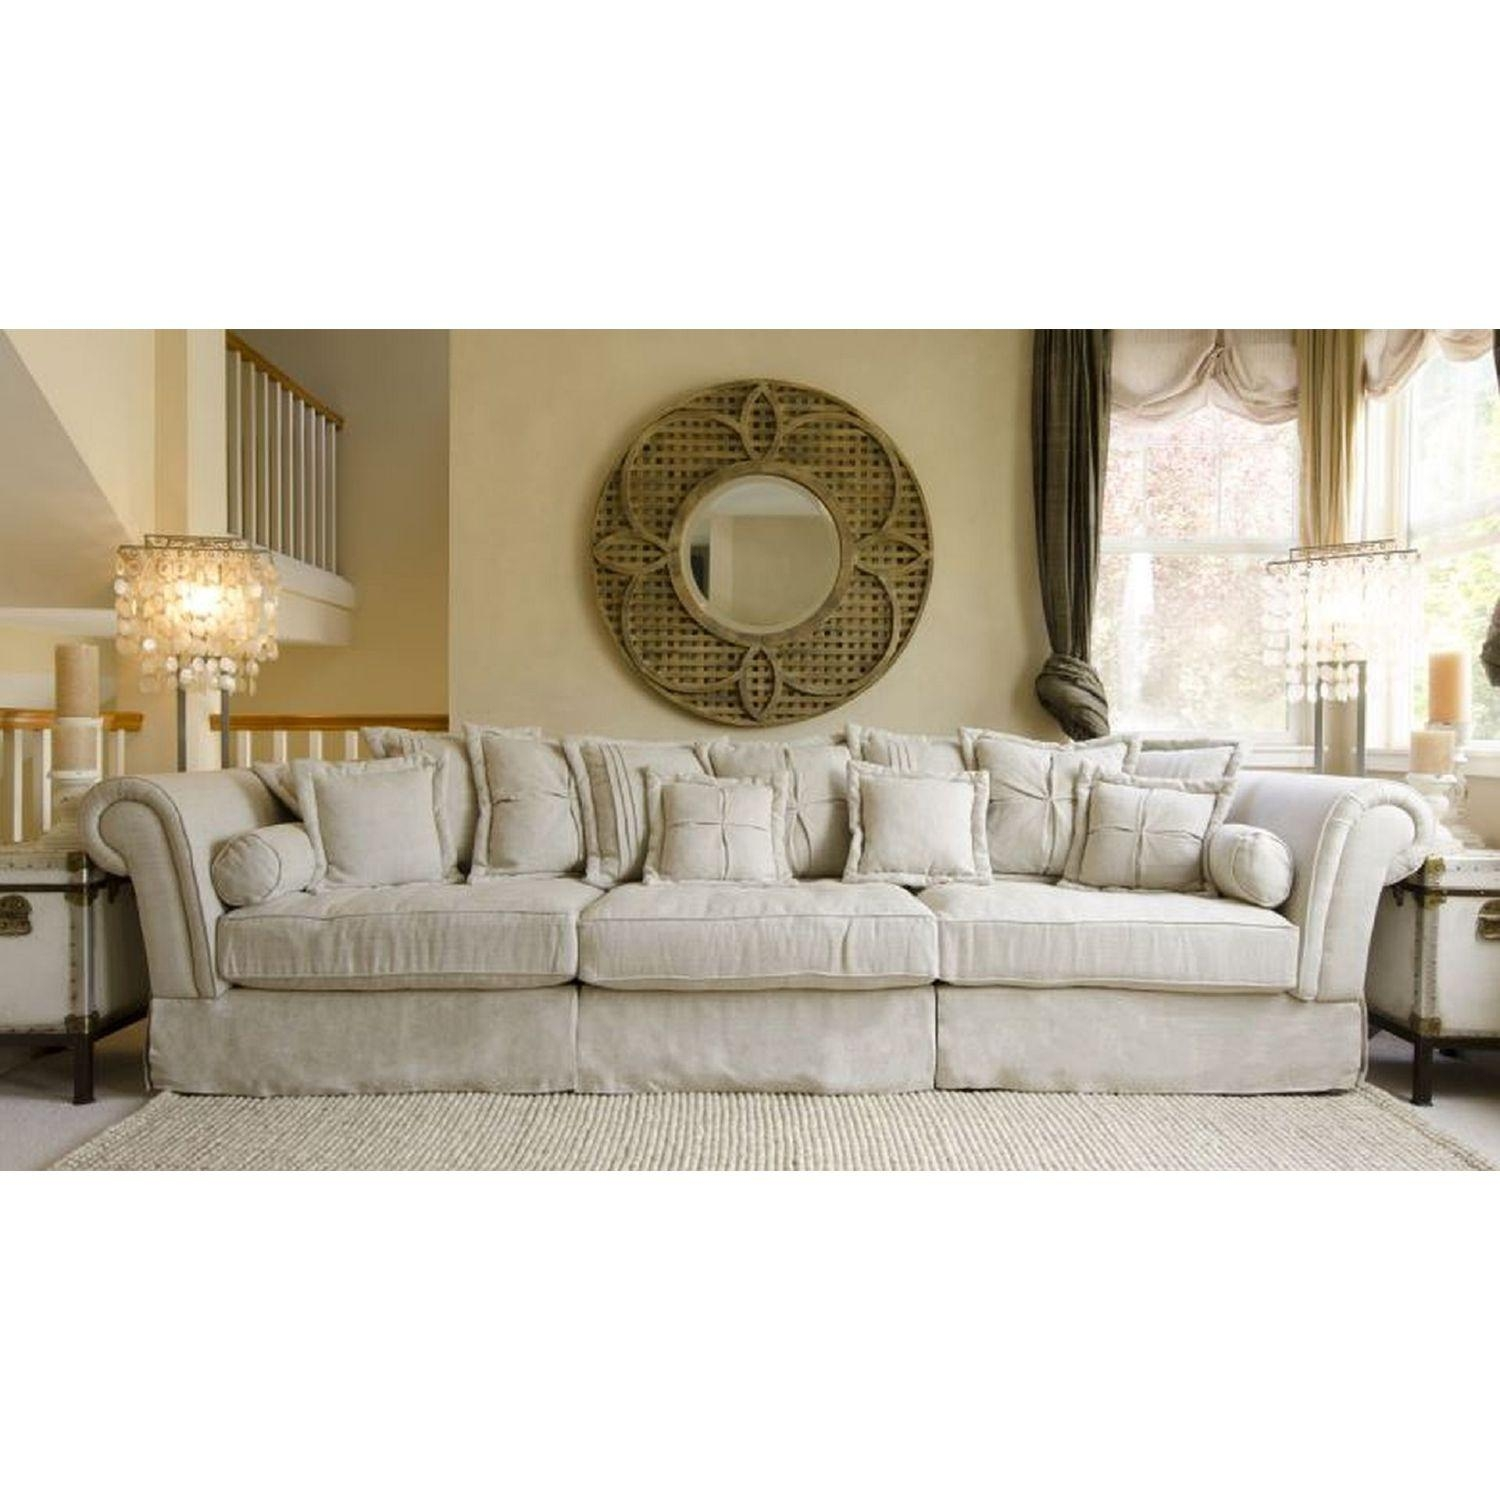 shabby chic sectional sofa rachel ashwell shabby chic couture style living thesofa. Black Bedroom Furniture Sets. Home Design Ideas